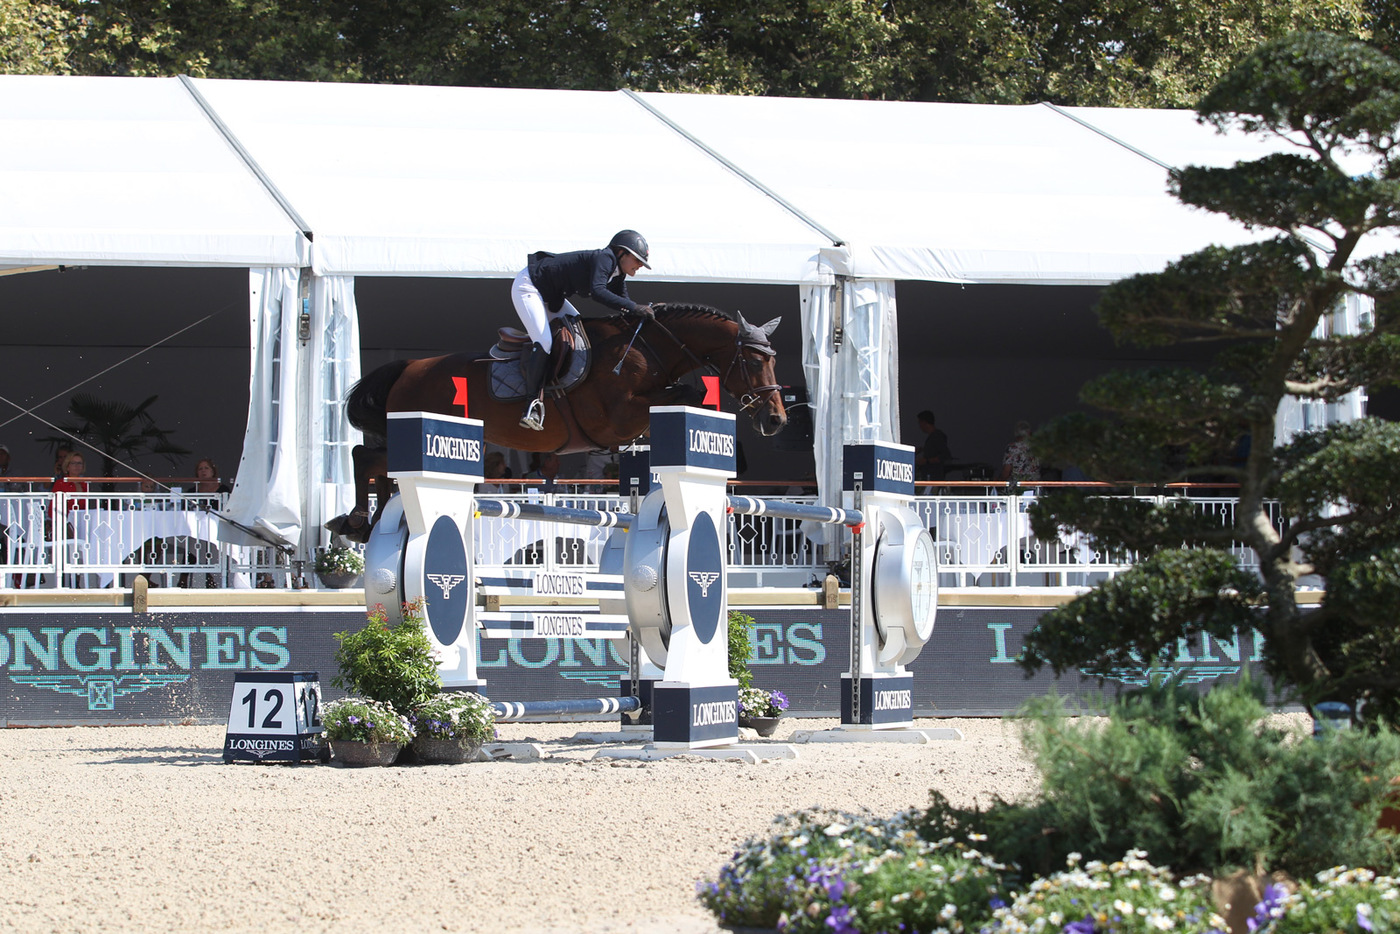 Longines Show Jumping Event: Robert Whitaker (GBR) wins the Grand Prix Longines of the City of Lausanne 6